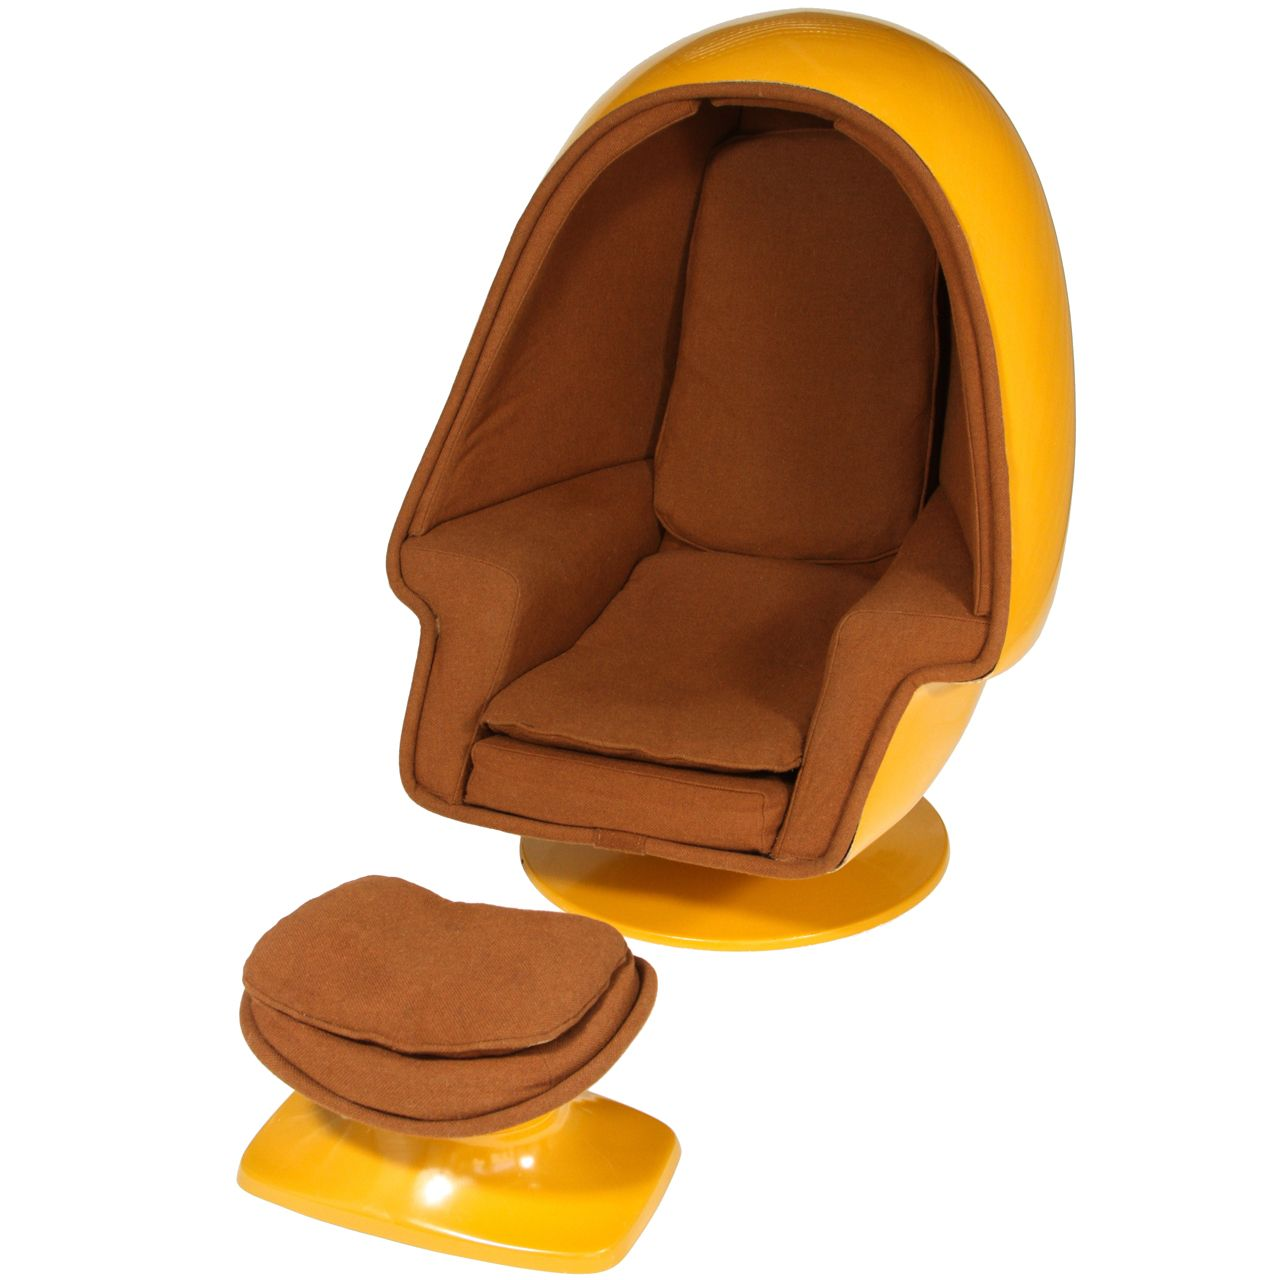 Superieur 1stdibs | 1970 Vintage Lee West Alpha Chamber Egg Pod Stereo Chair